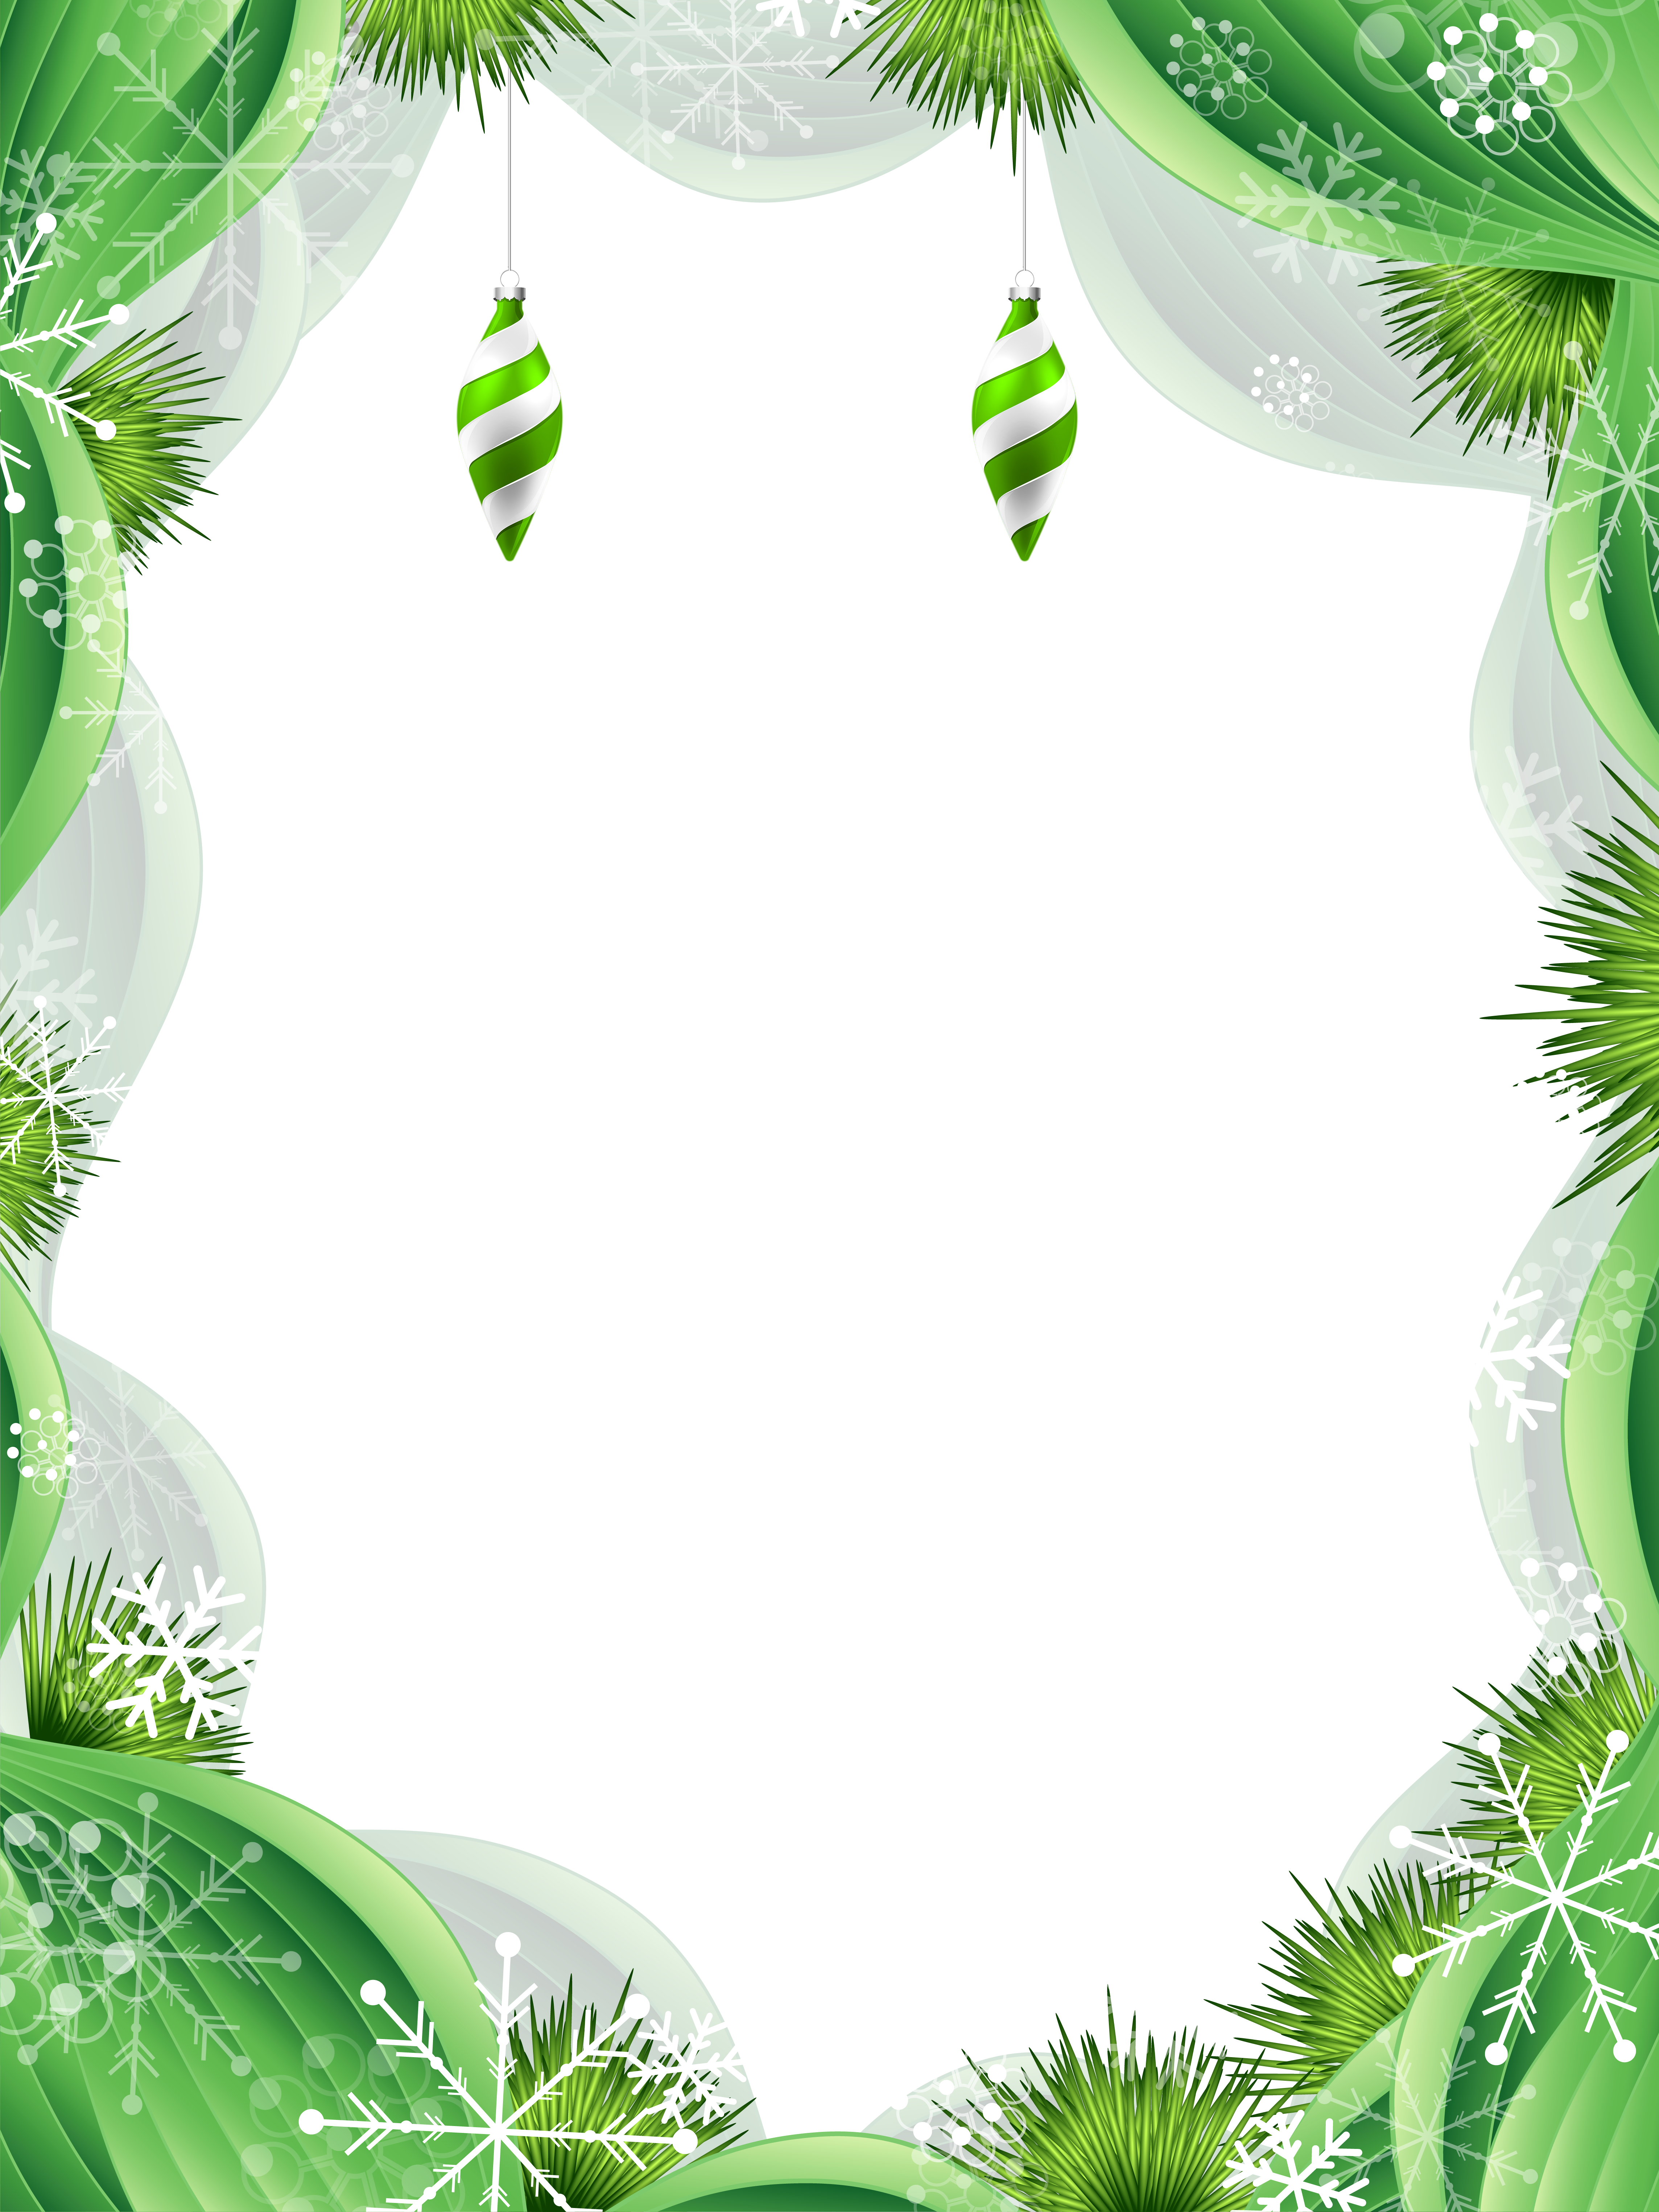 Green frame png. Christmas clipart image gallery